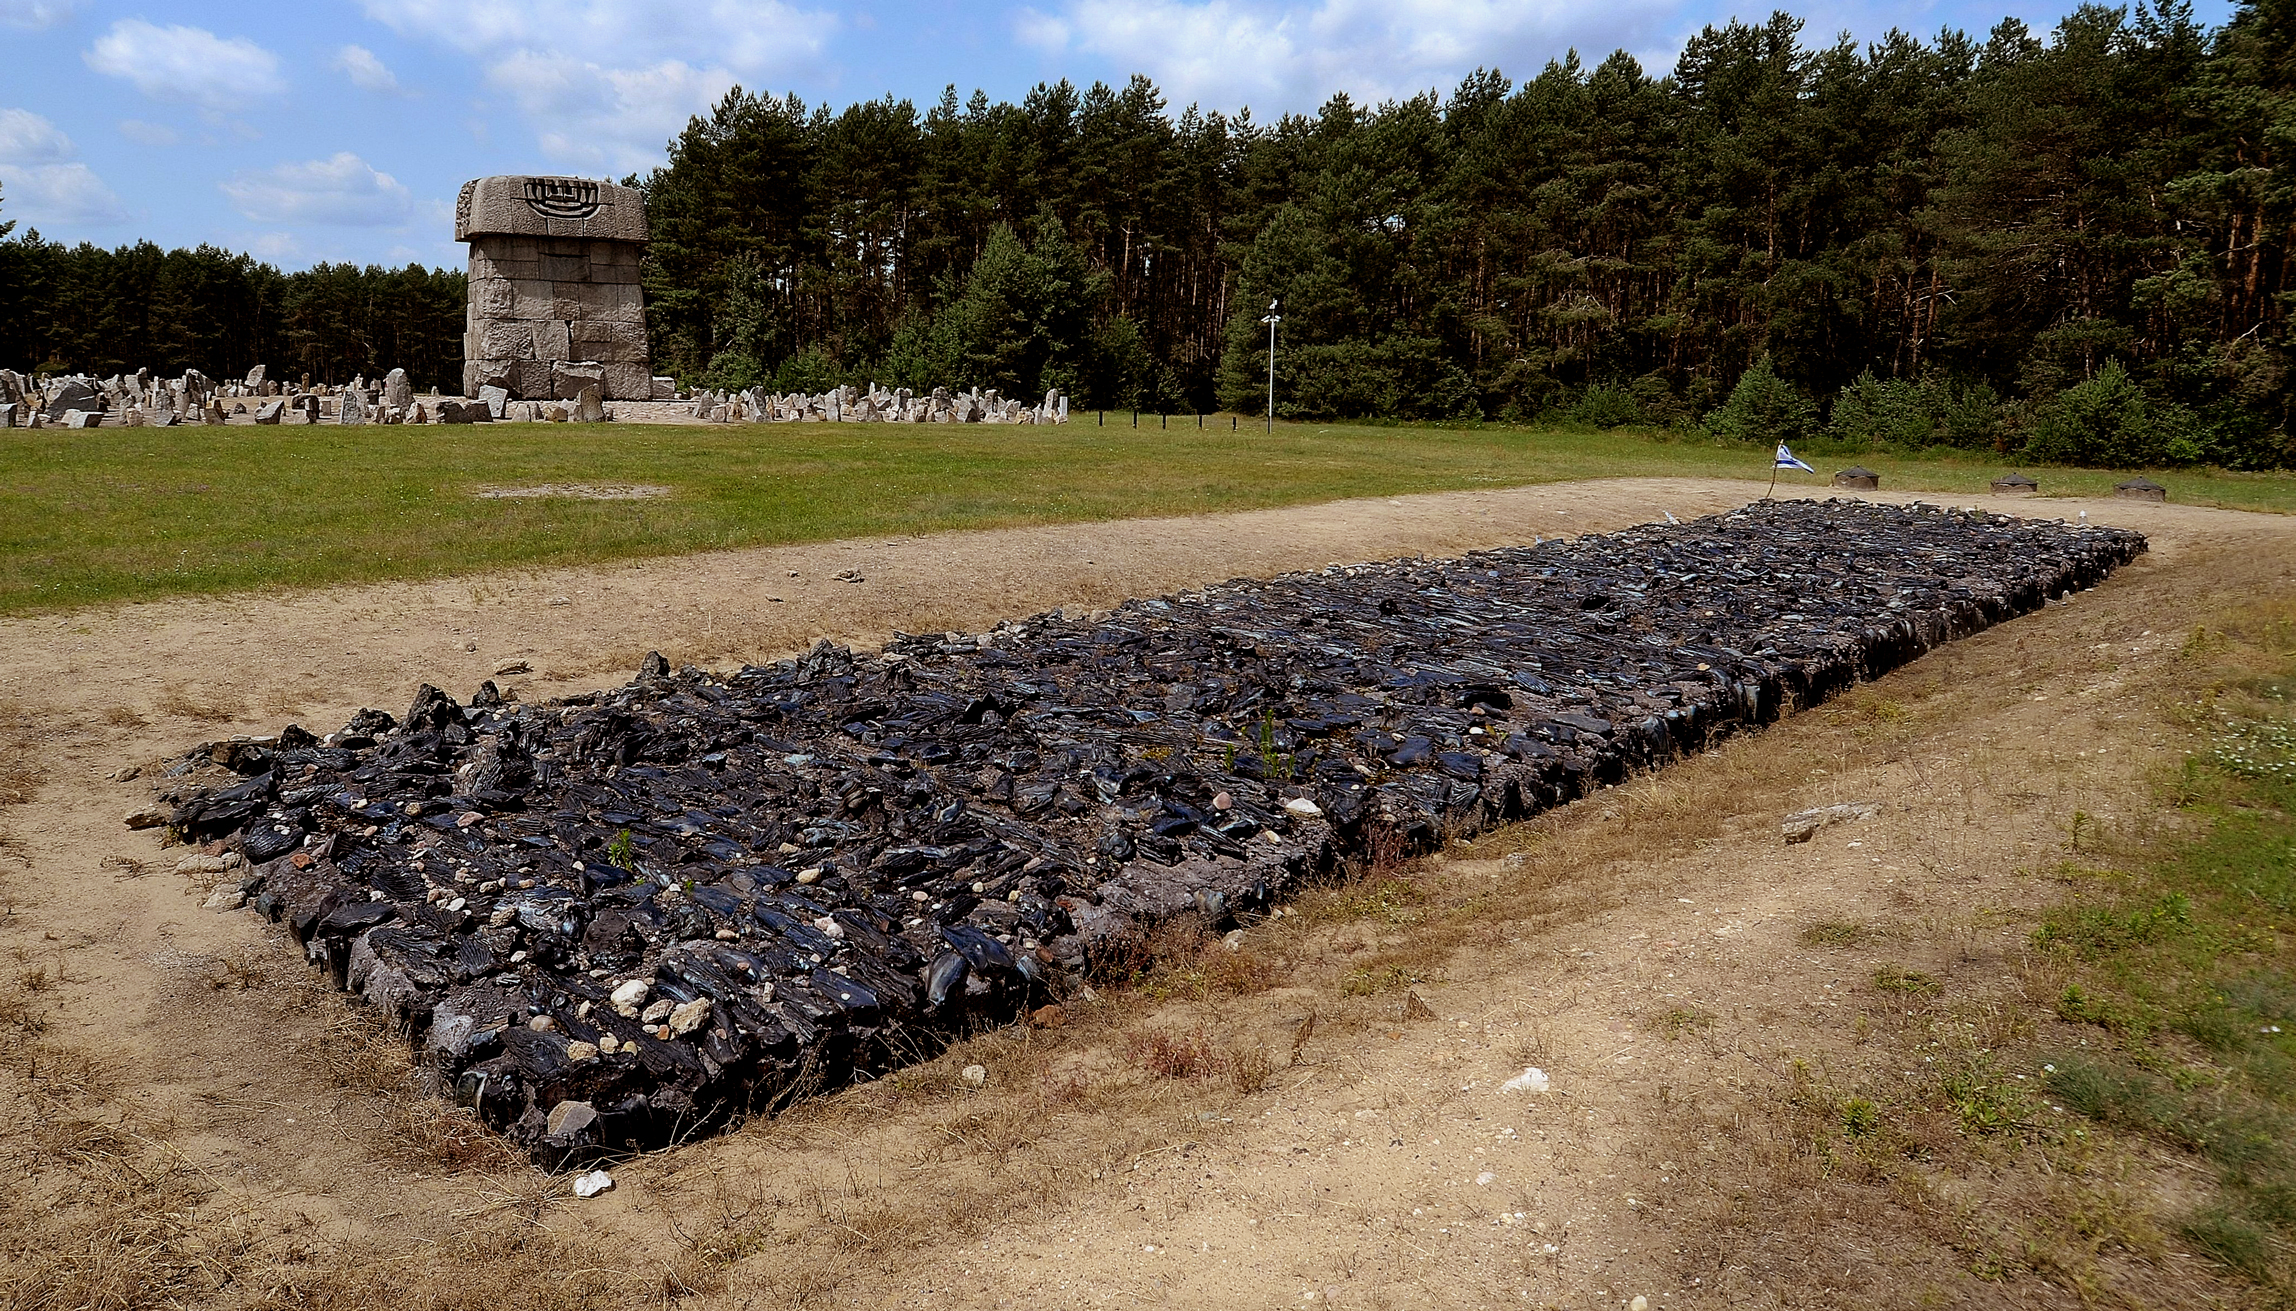 https://upload.wikimedia.org/wikipedia/commons/b/ba/Treblinka_Cremation_Pit_2.jpg